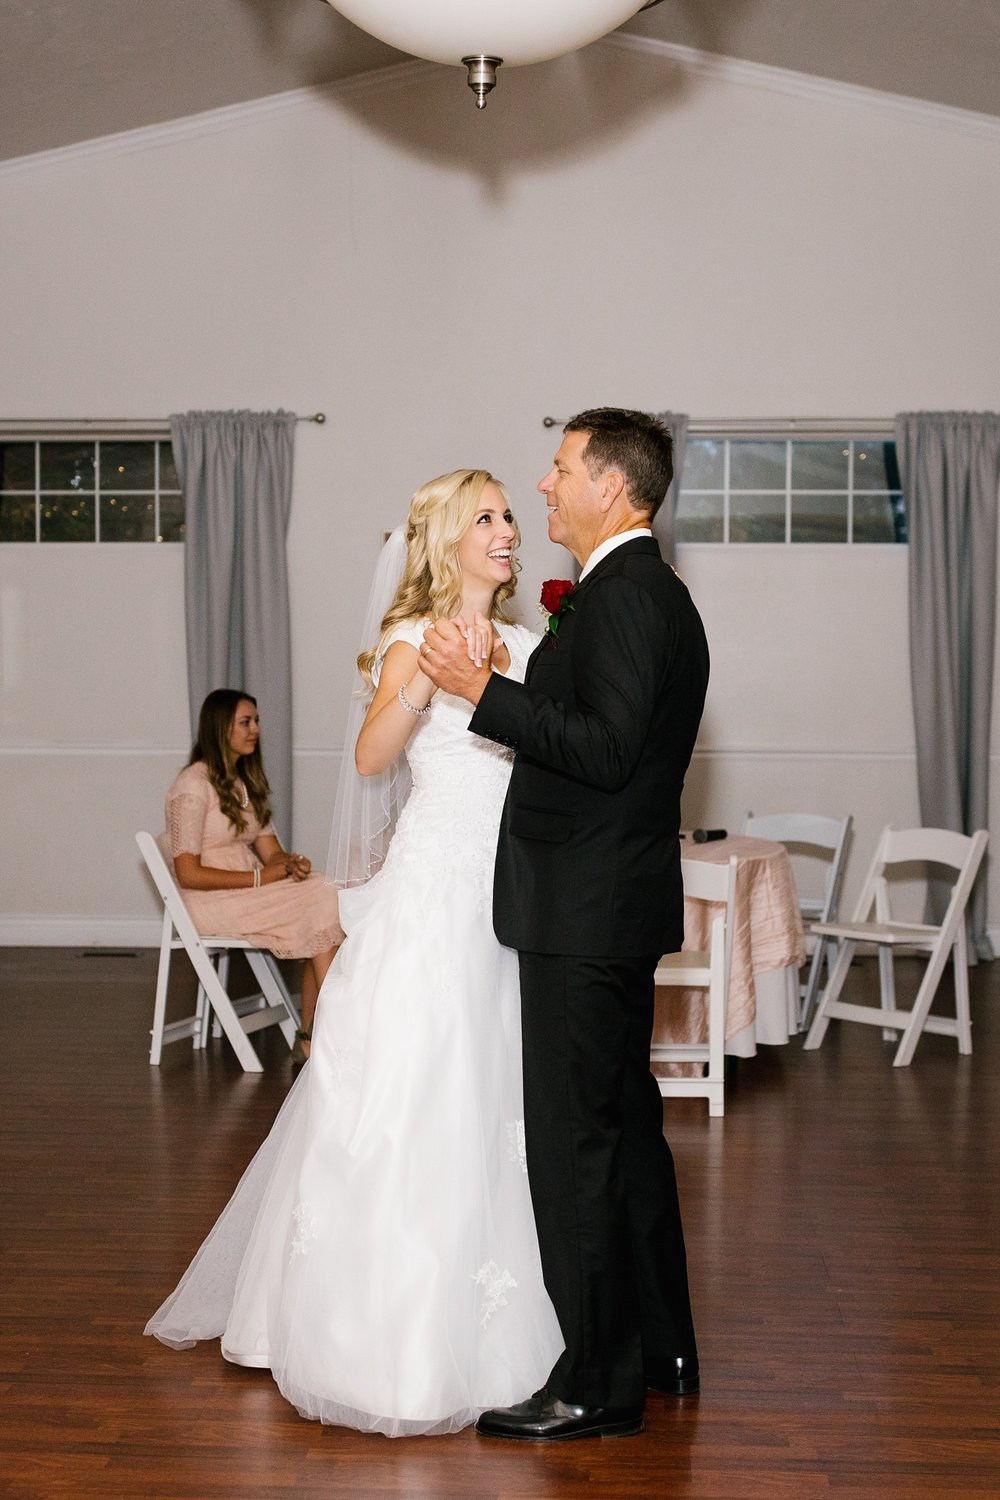 HannahChaseWedding-496_Lizzie-B-Imagery-Utah-Wedding-Photographer-Bridal-Photography-Payson-Utah-Temple-Clarion-Gardens-Catering-and-Events-Center.jpg